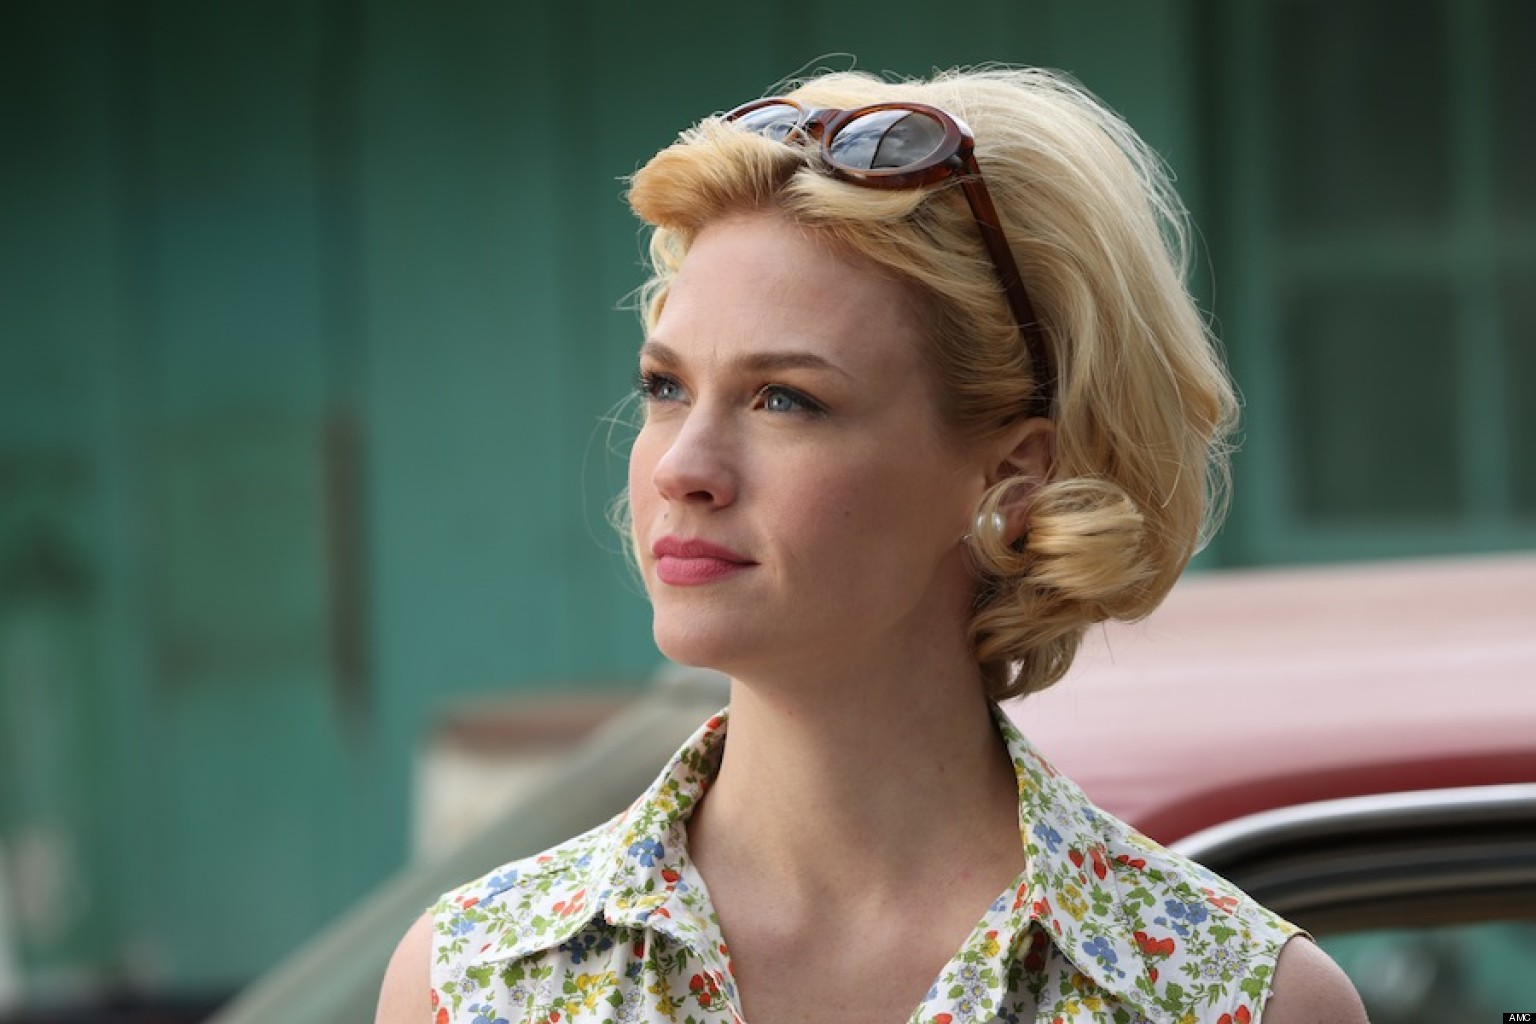 Mad Men - 06x09 - The Better Half betty